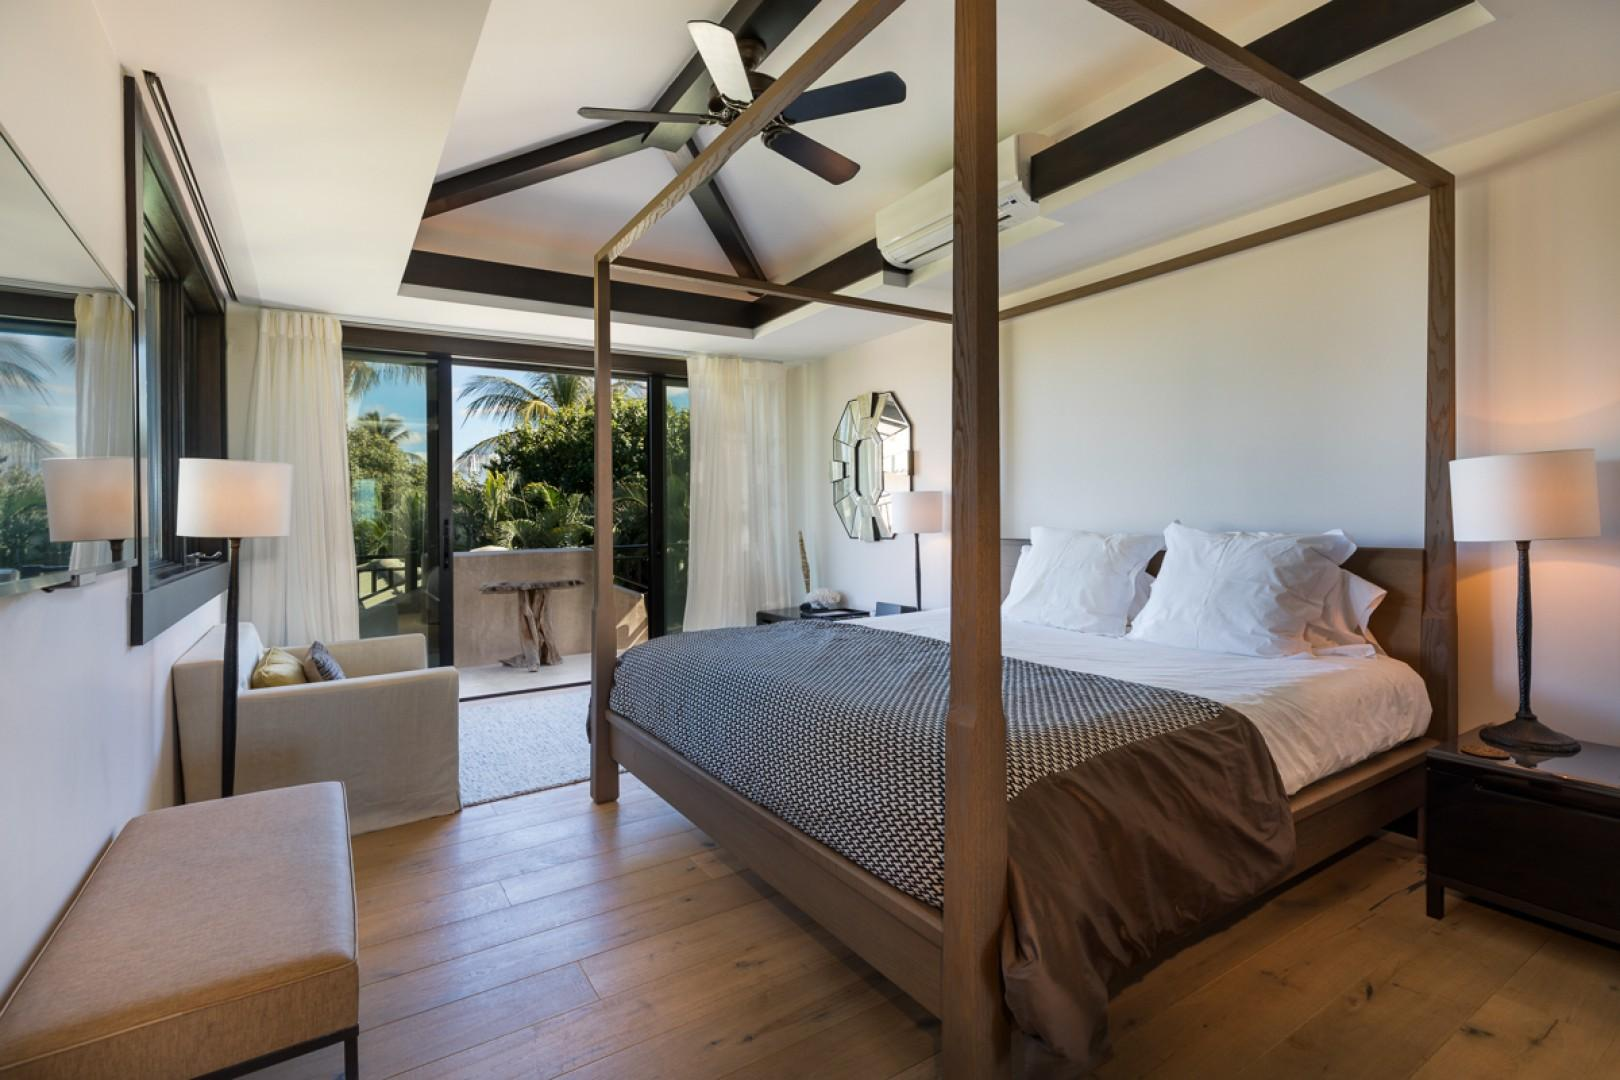 Another stylish and comfortable bedroom